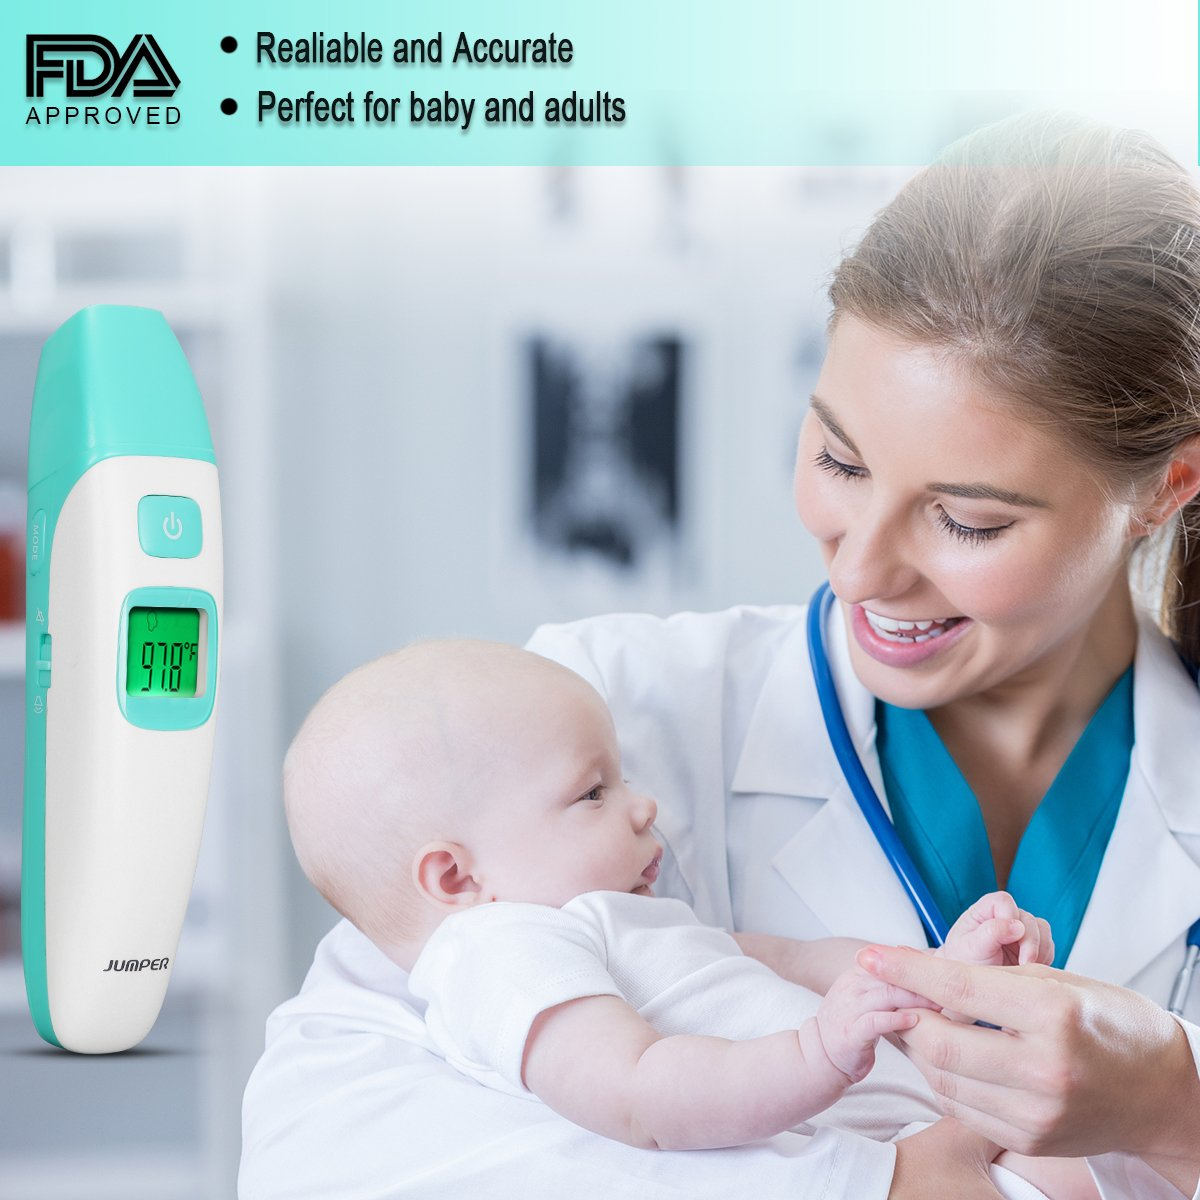 Amazon.com : Baby Thermometer Forehead and Ear, Infrared Digital Thermometer with Fever Alarm Indicator and Clinical Accuracy Instant Read Medical ...